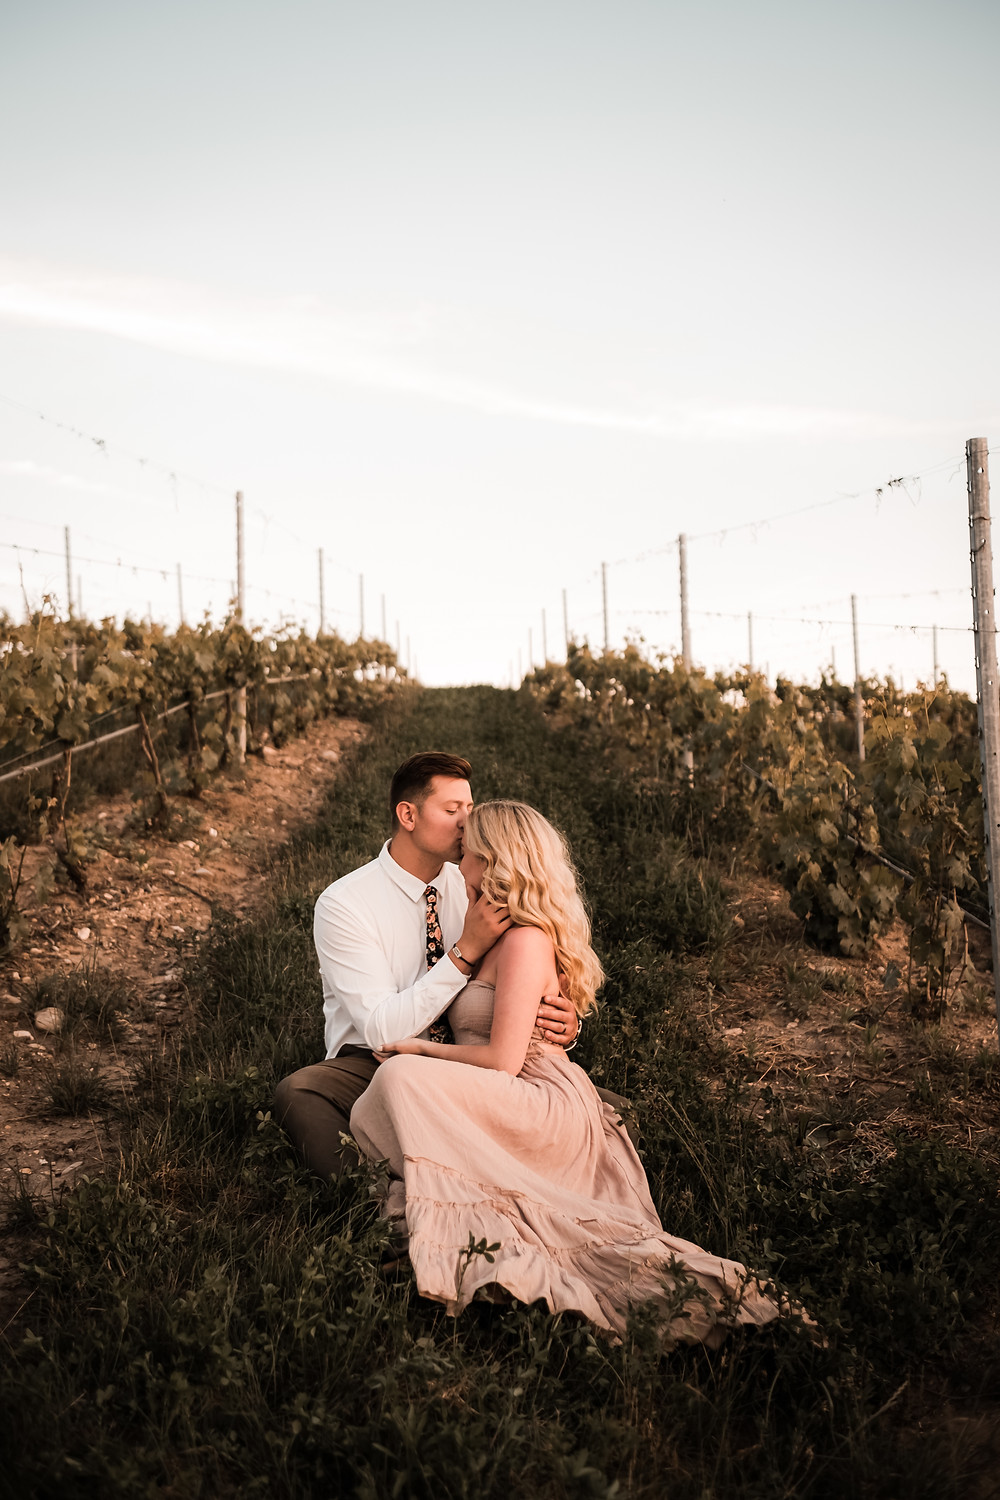 Engagement photo session with couple in a vineyard